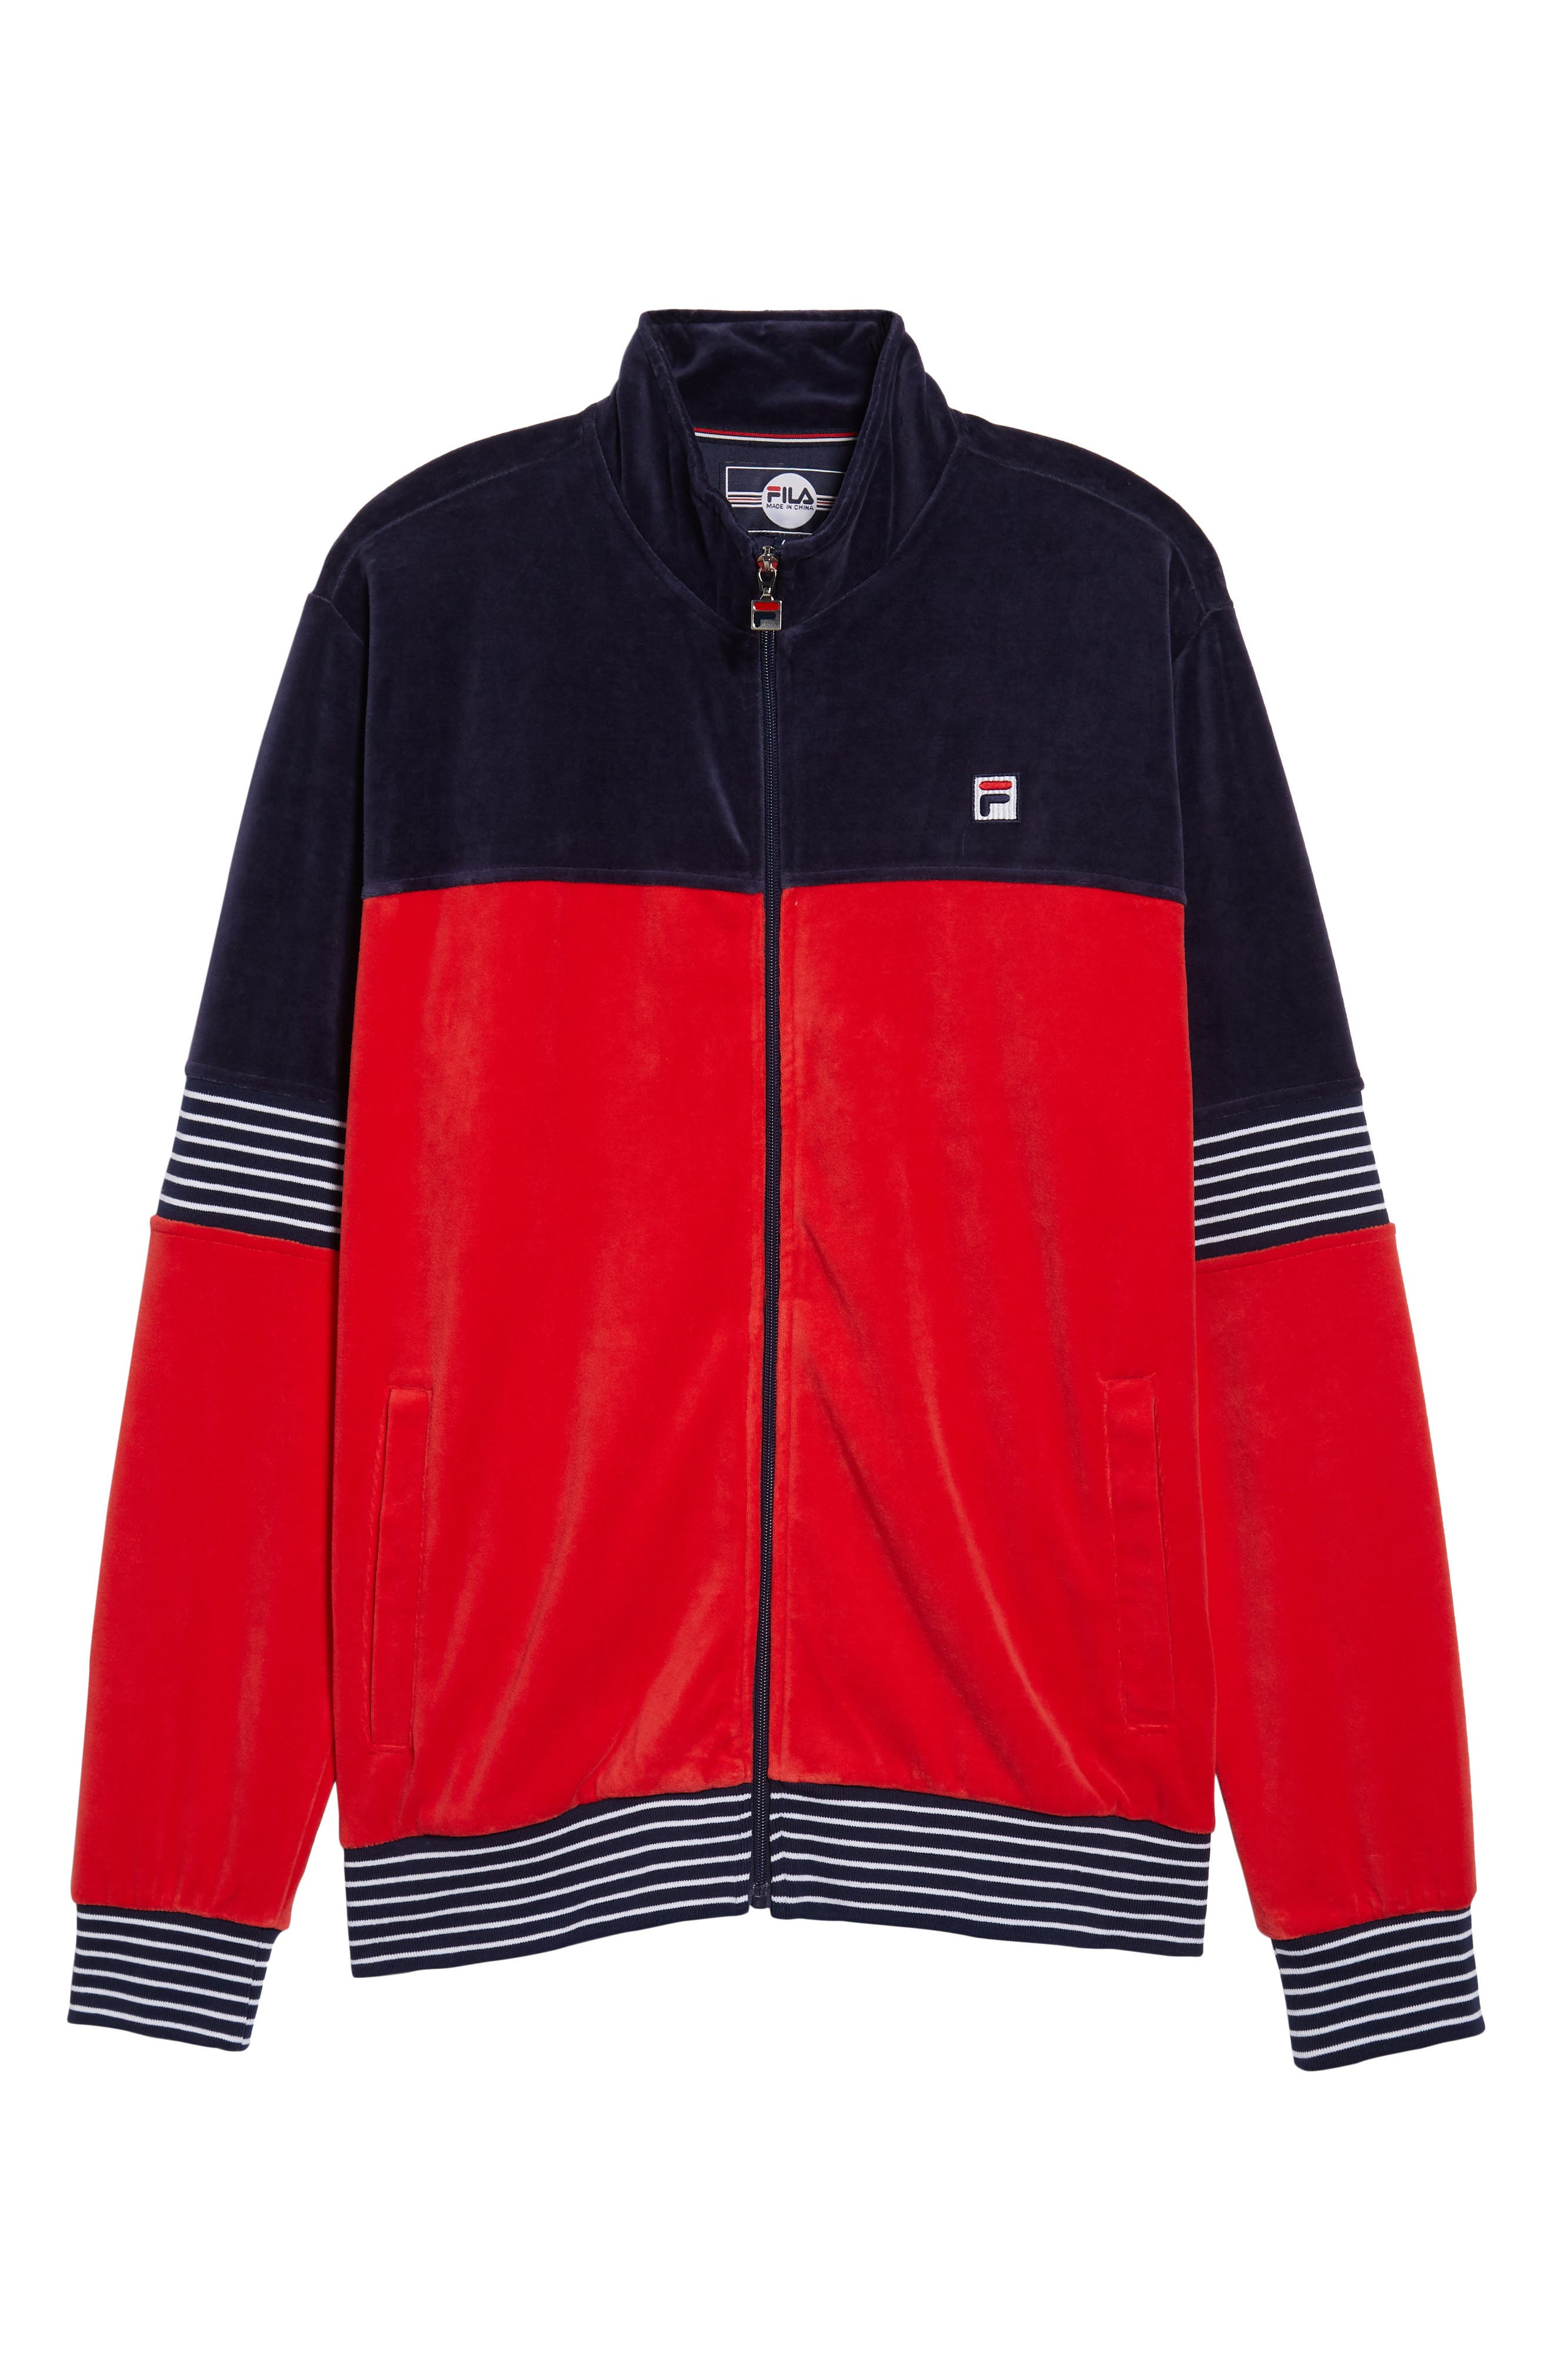 Marcus Velour Track Jacket,                             Alternate thumbnail 6, color,                             Navy/ Chinese Red/ White